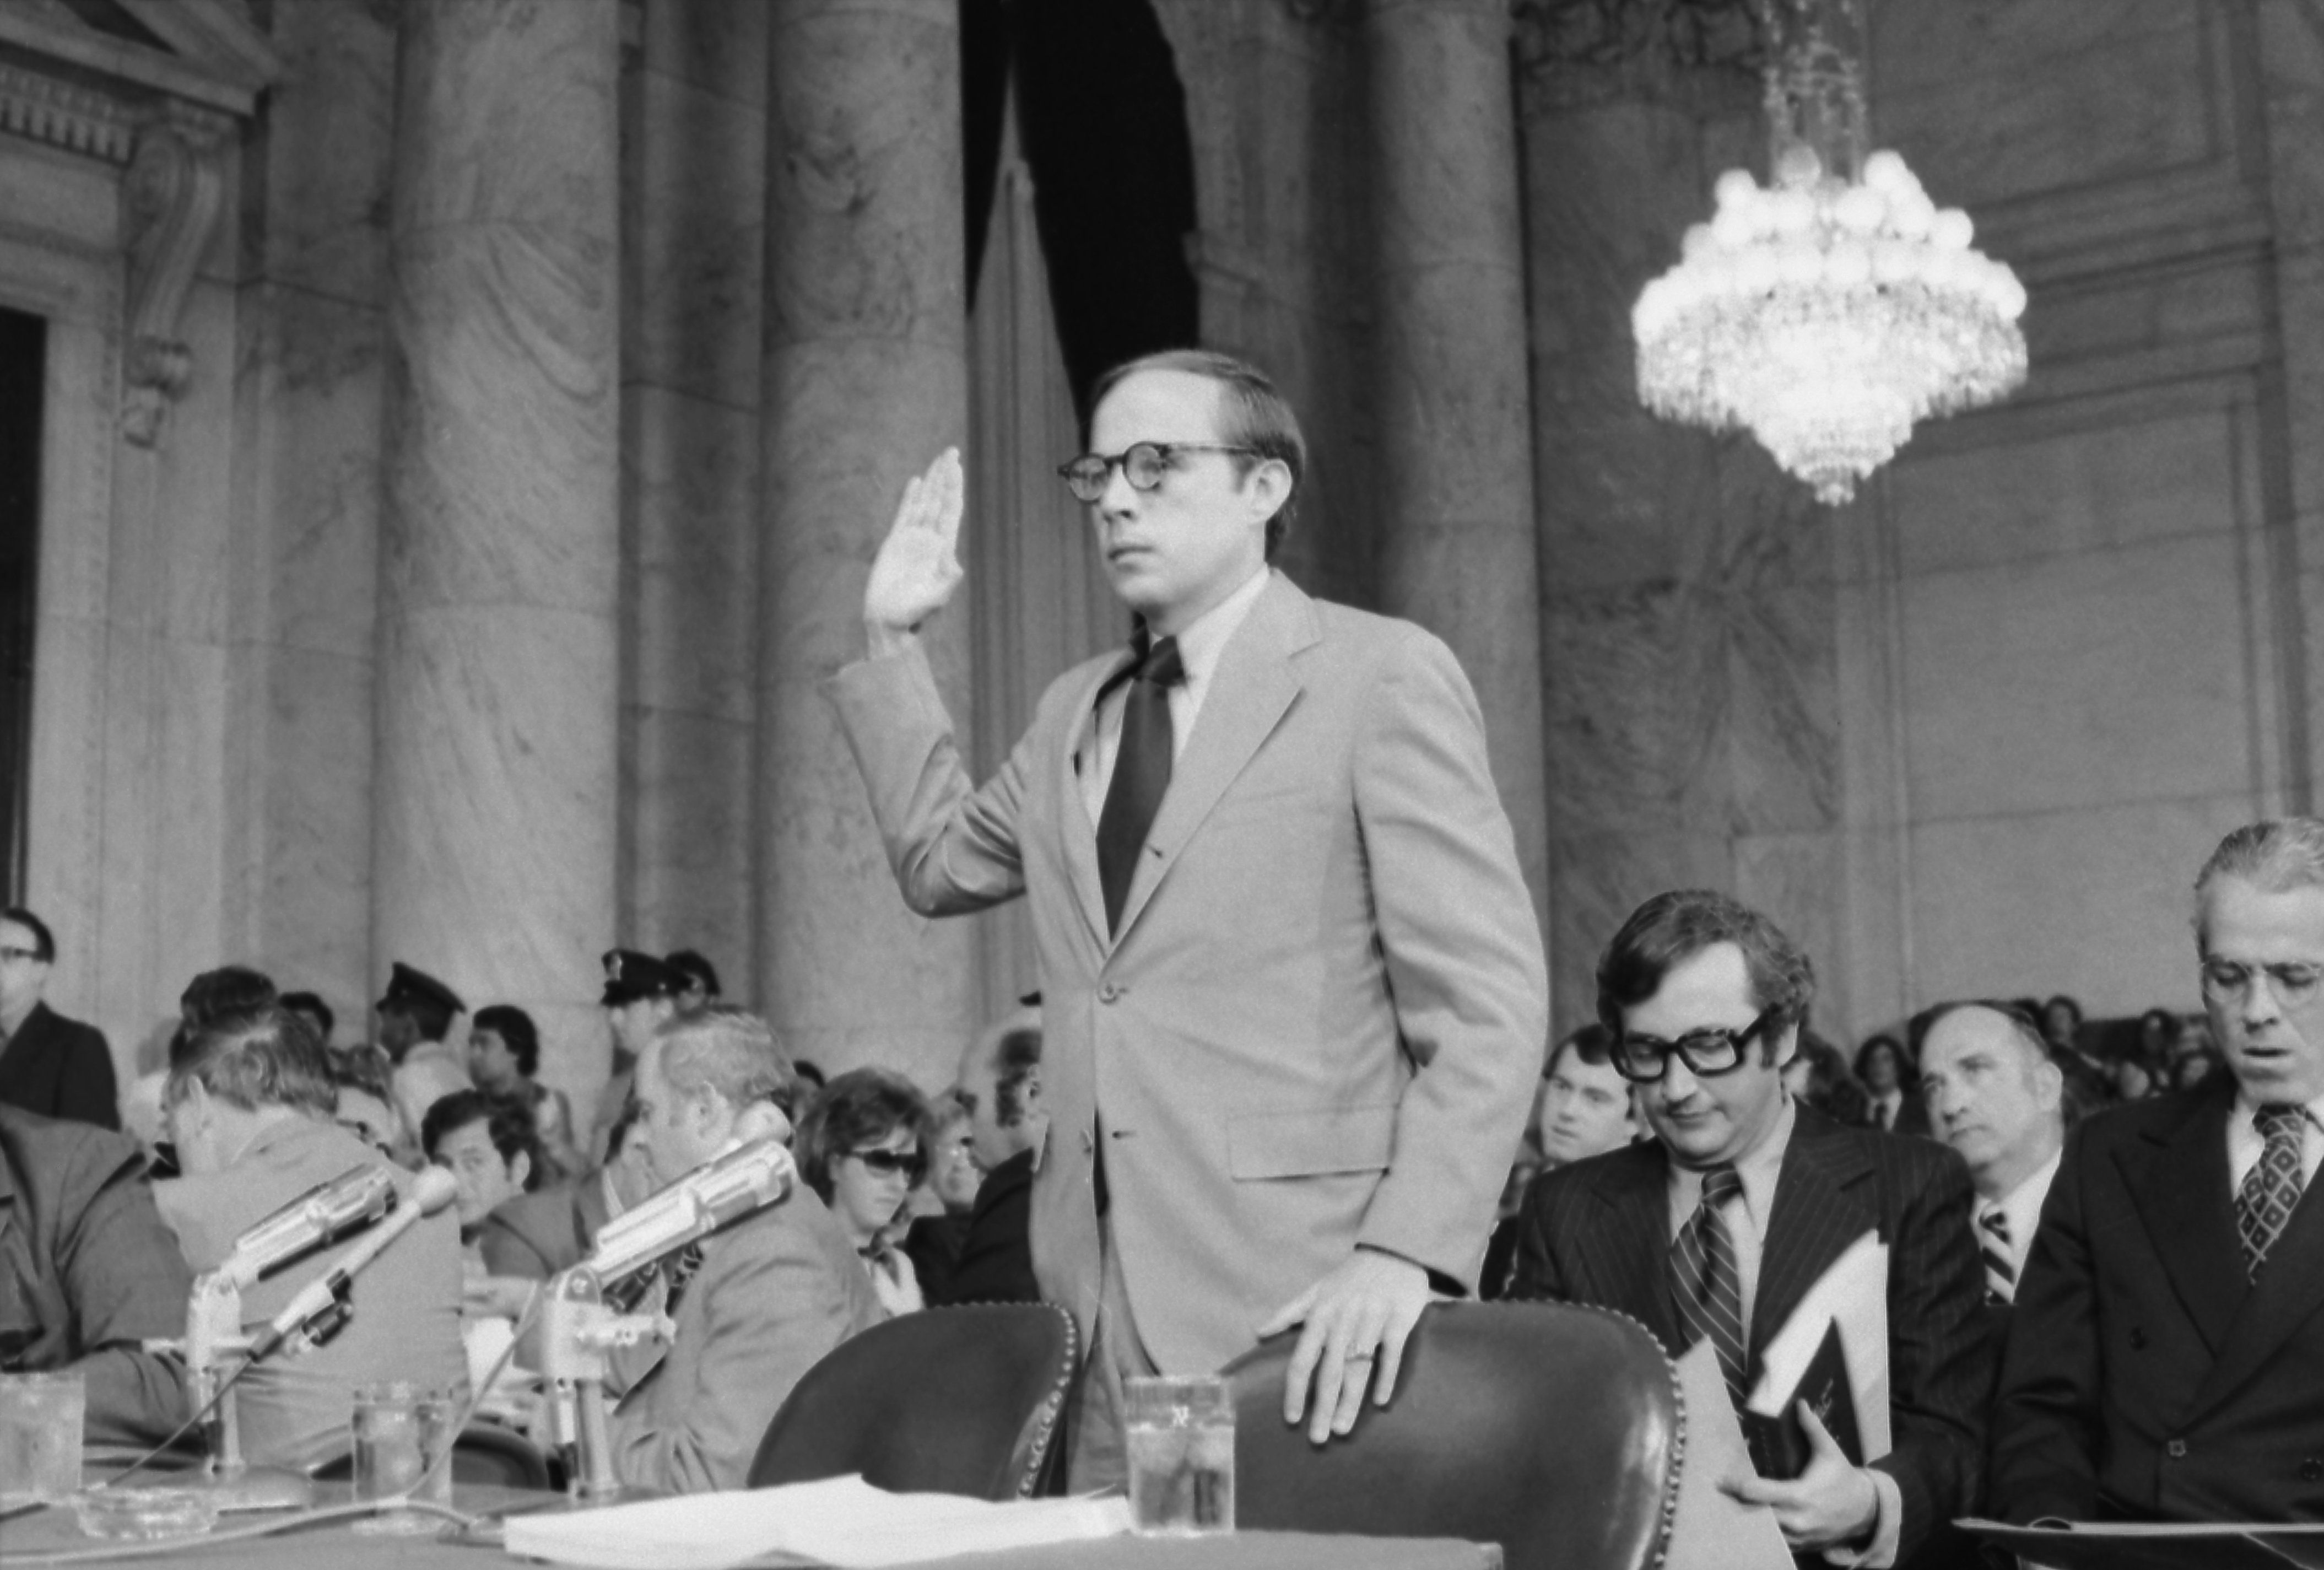 John Dean testifying during the Watergate investigation in